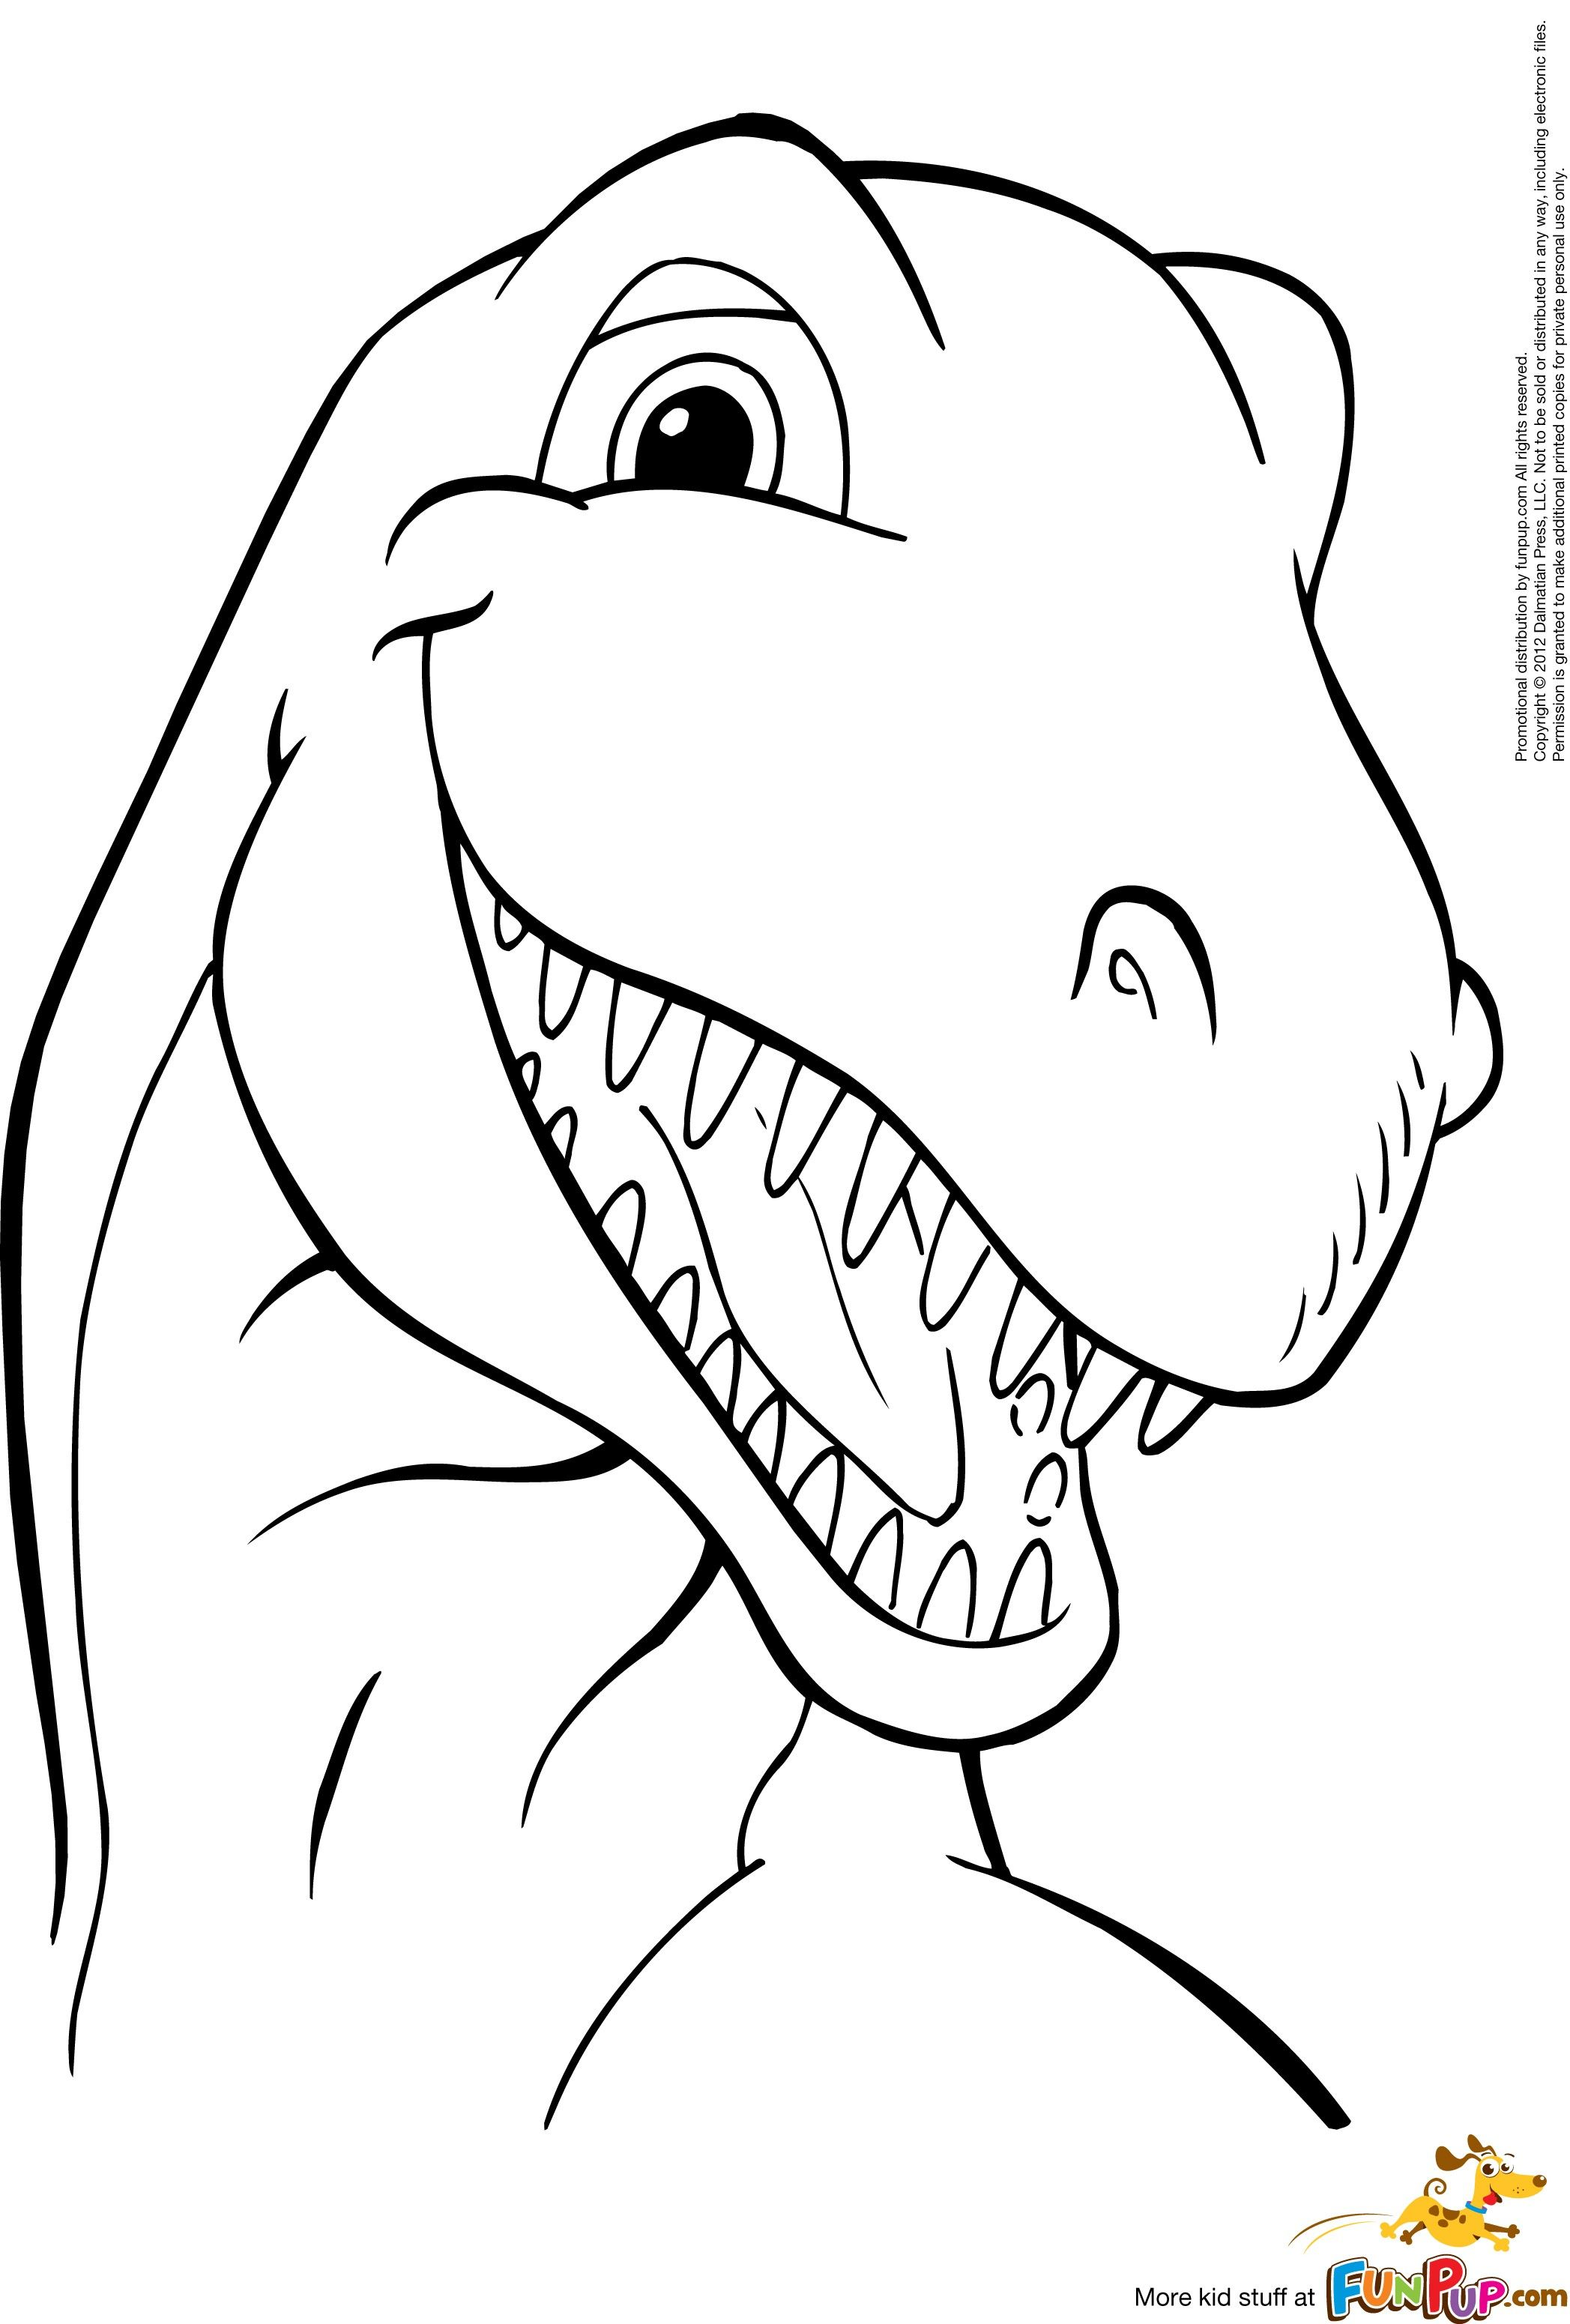 Printable coloring pages dinosaurs - Dinosaur Smiling 0 00 Print Coloring Pagesdinosaur Coloring Pagesfree Printable